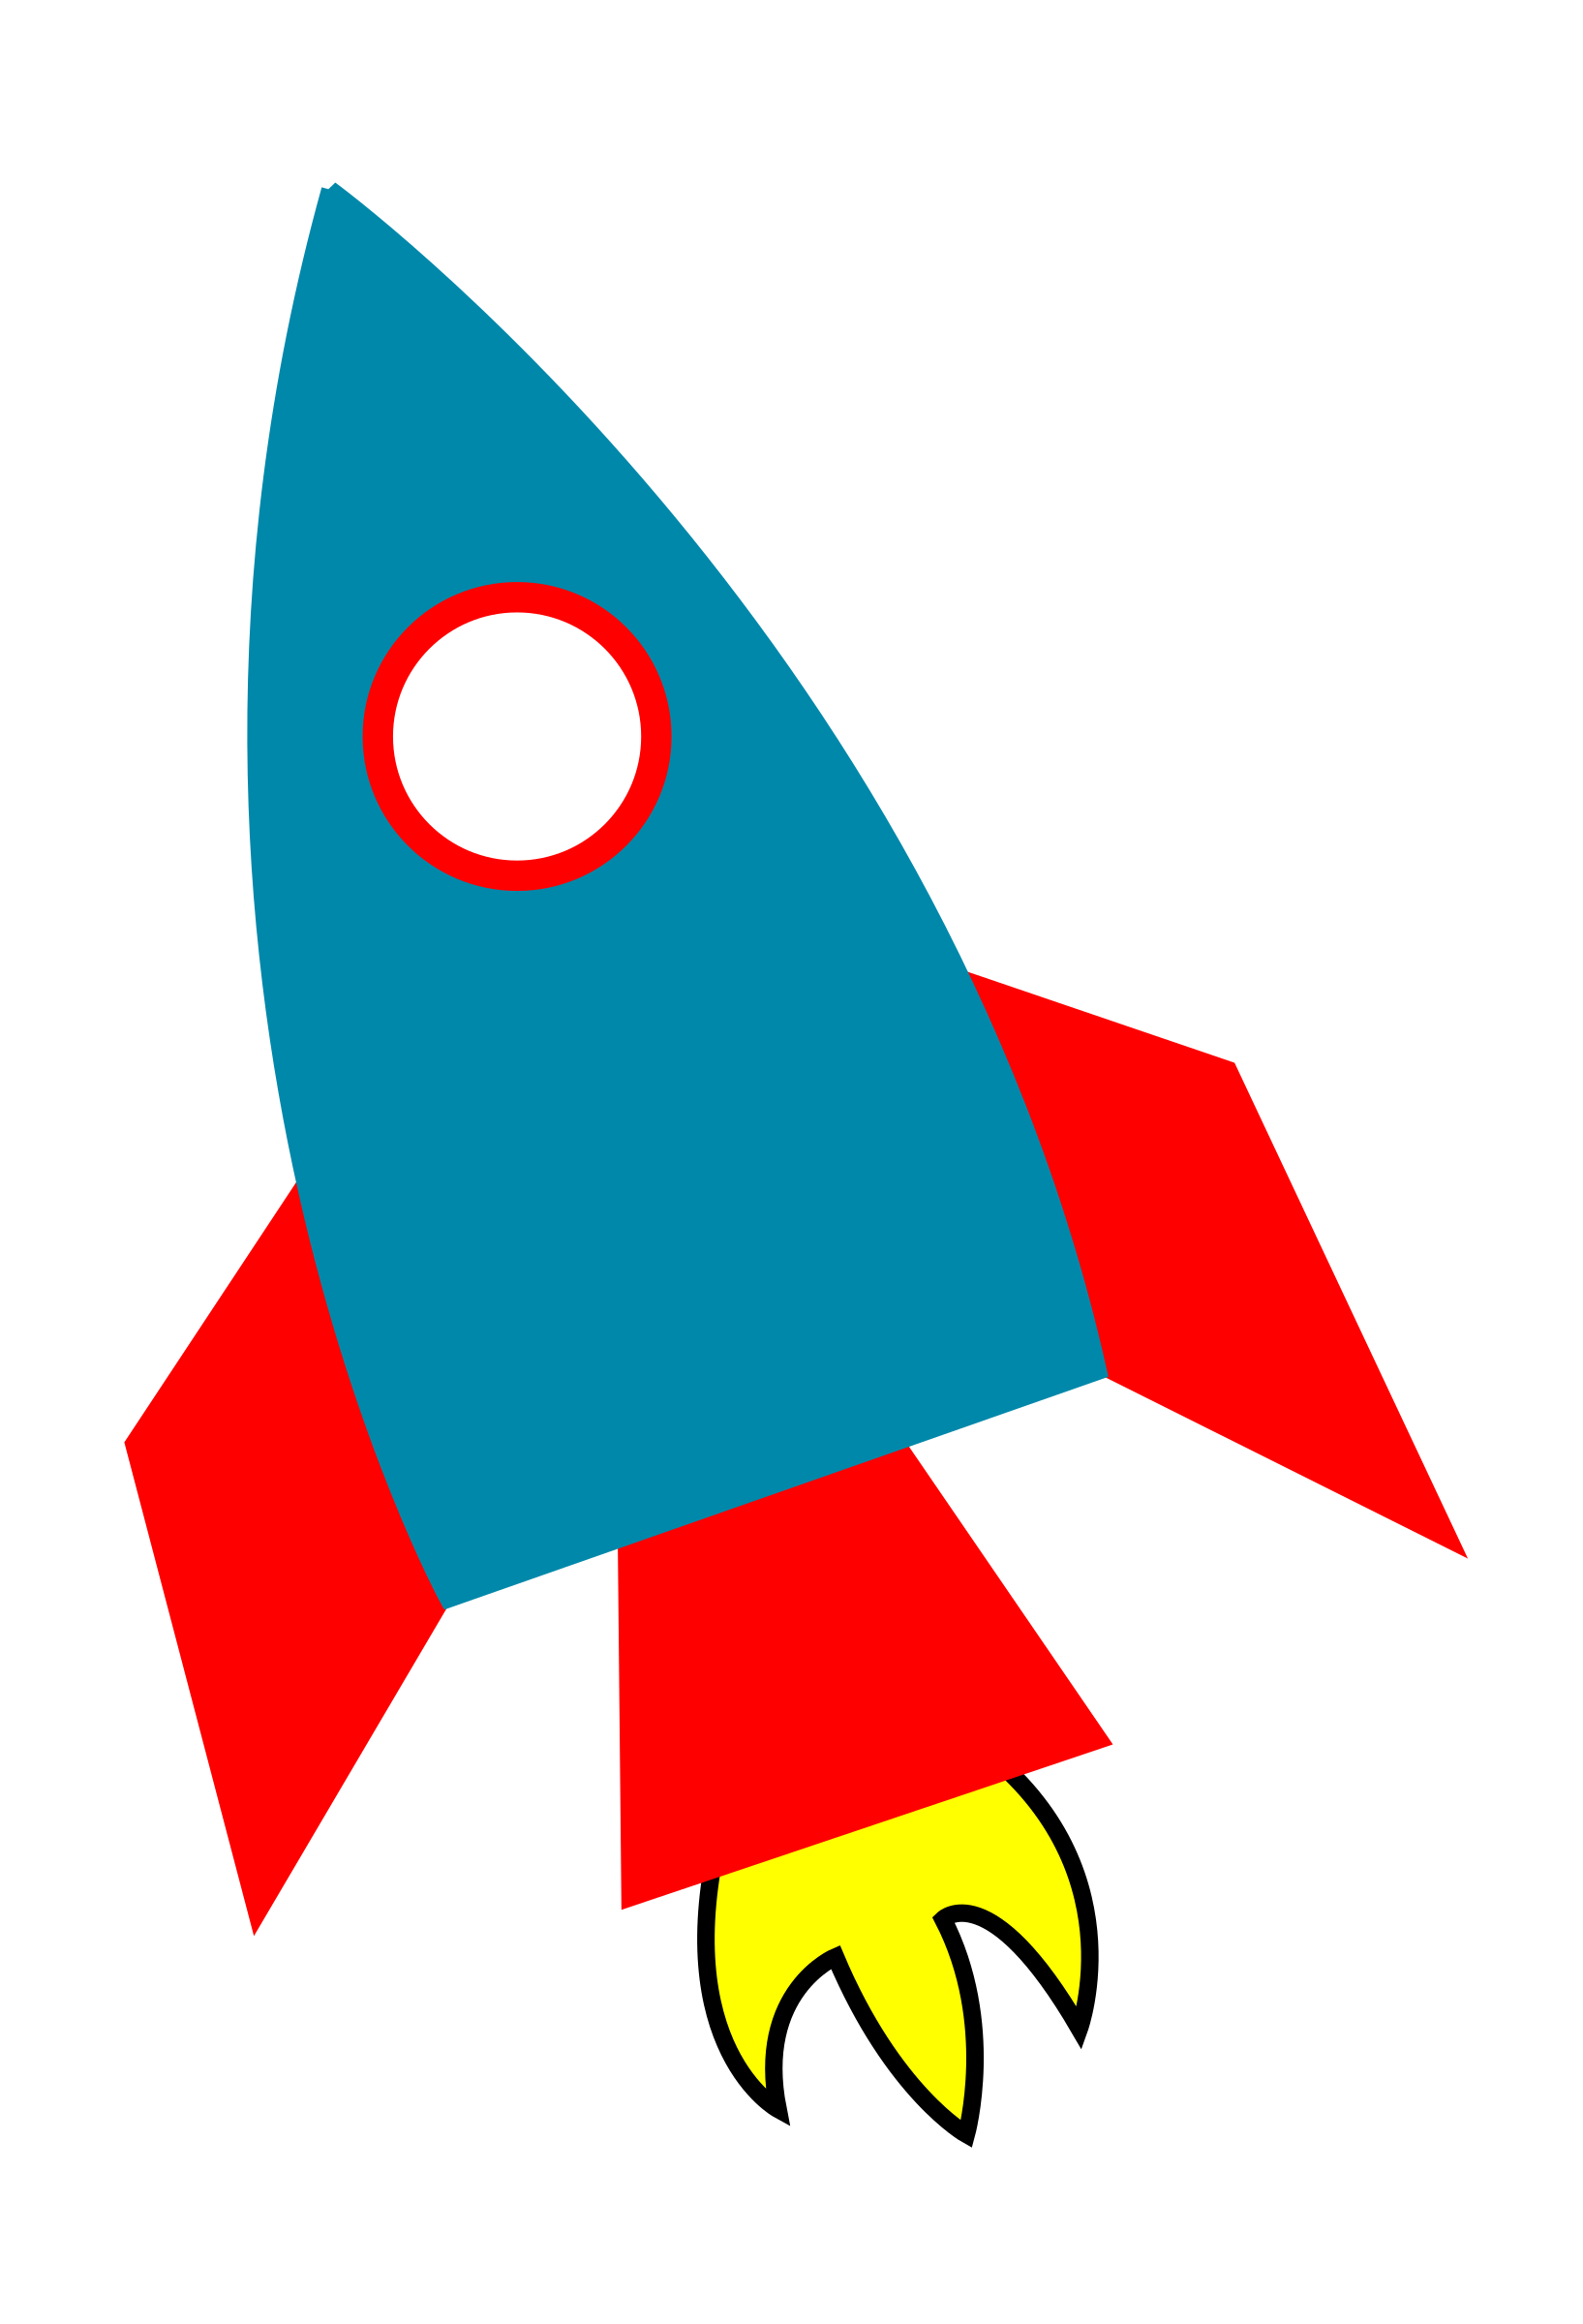 Space rocket by agomjo